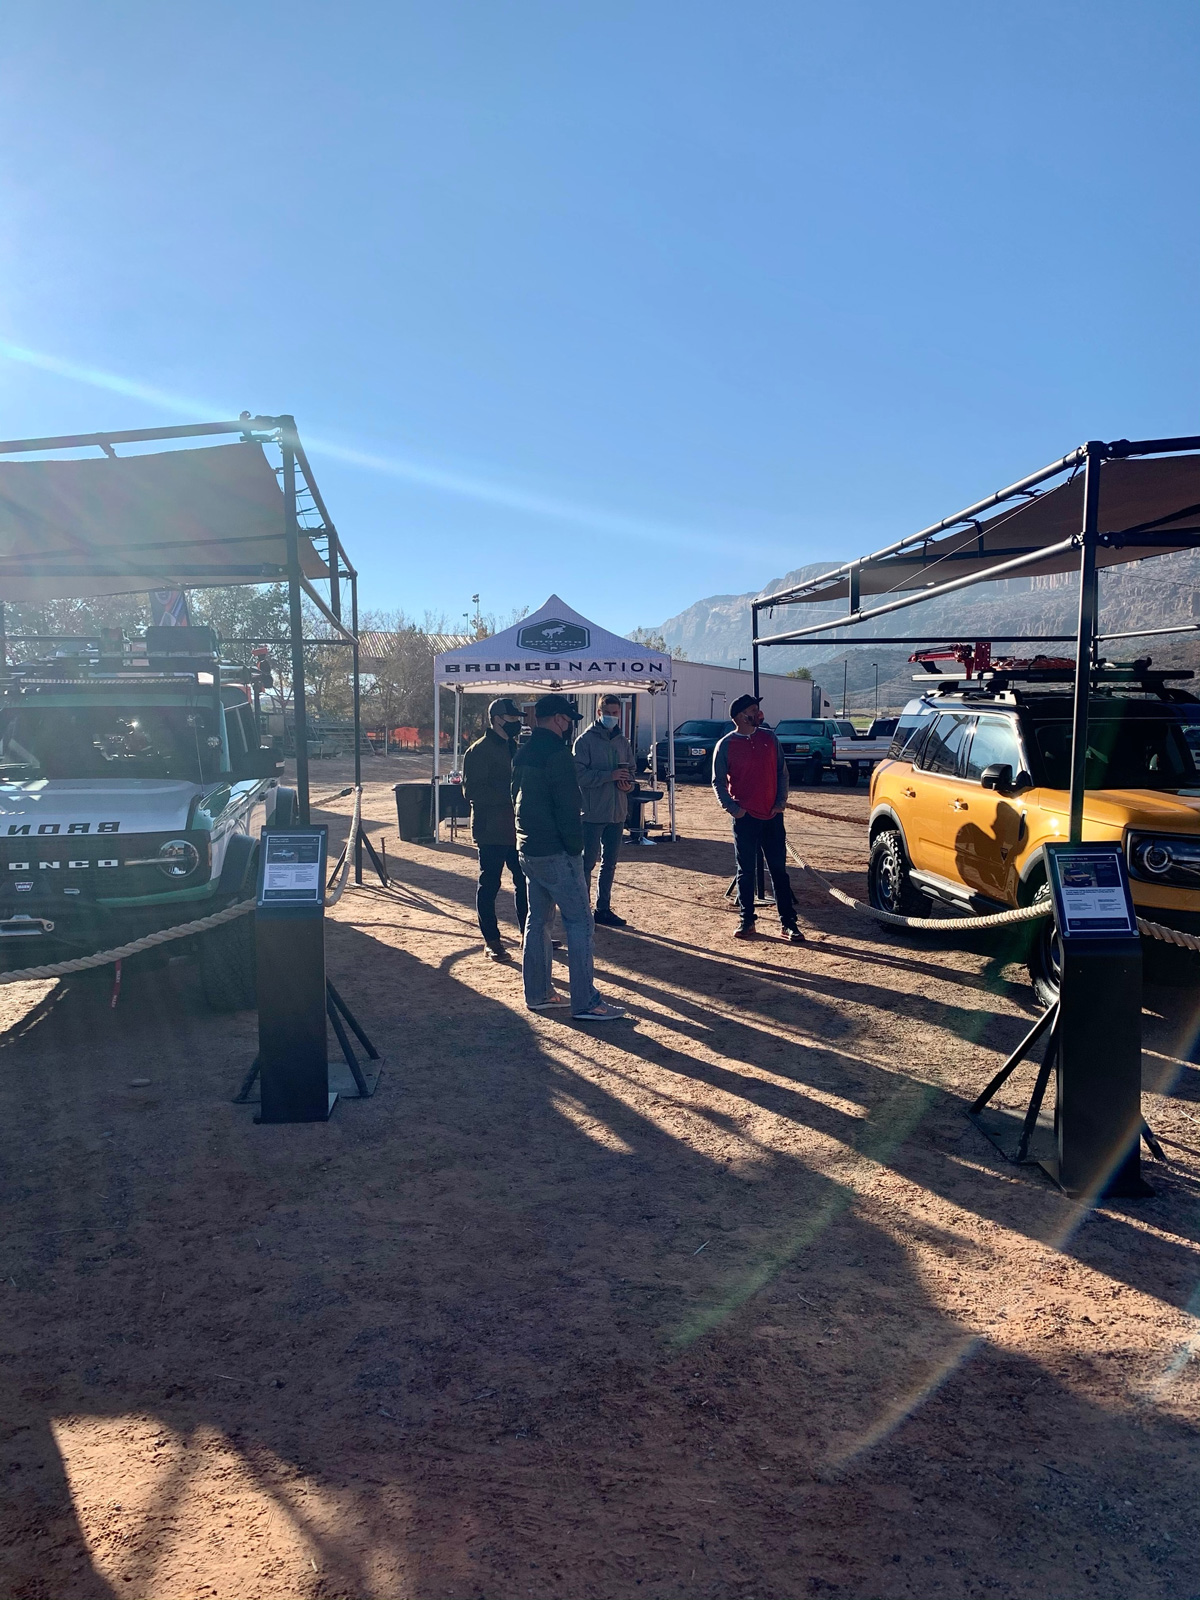 Gearing up early for the Moab 4x4 expo at the show tents